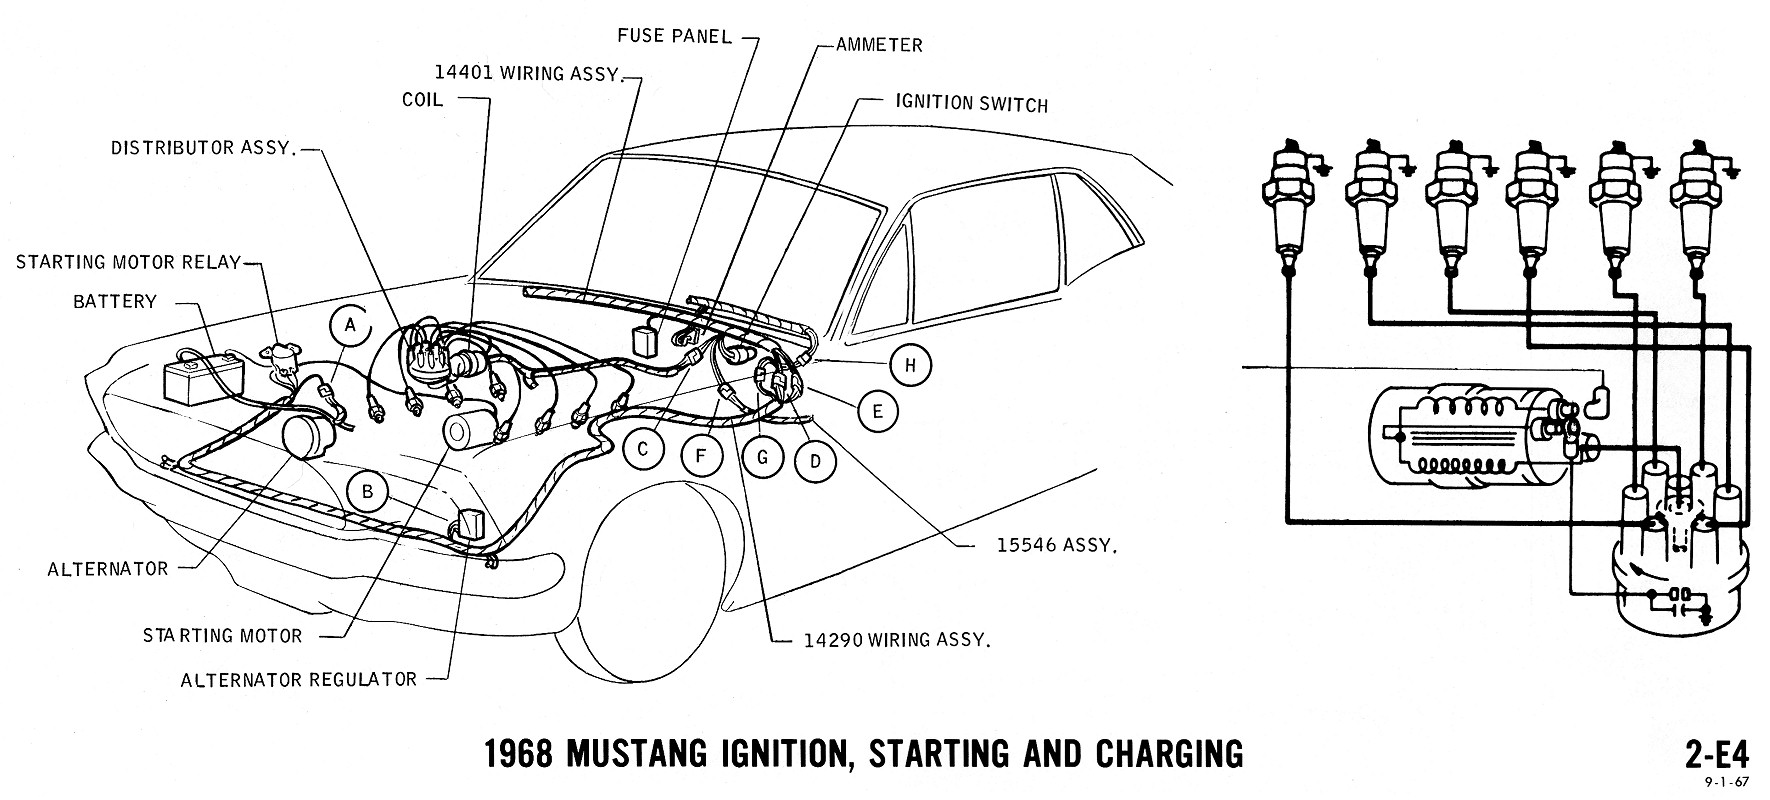 1966 Mgb Wiring Diagram Layout Diagrams 1969 Ignition 1968 Mustang And Vacuum Schematics 71 72